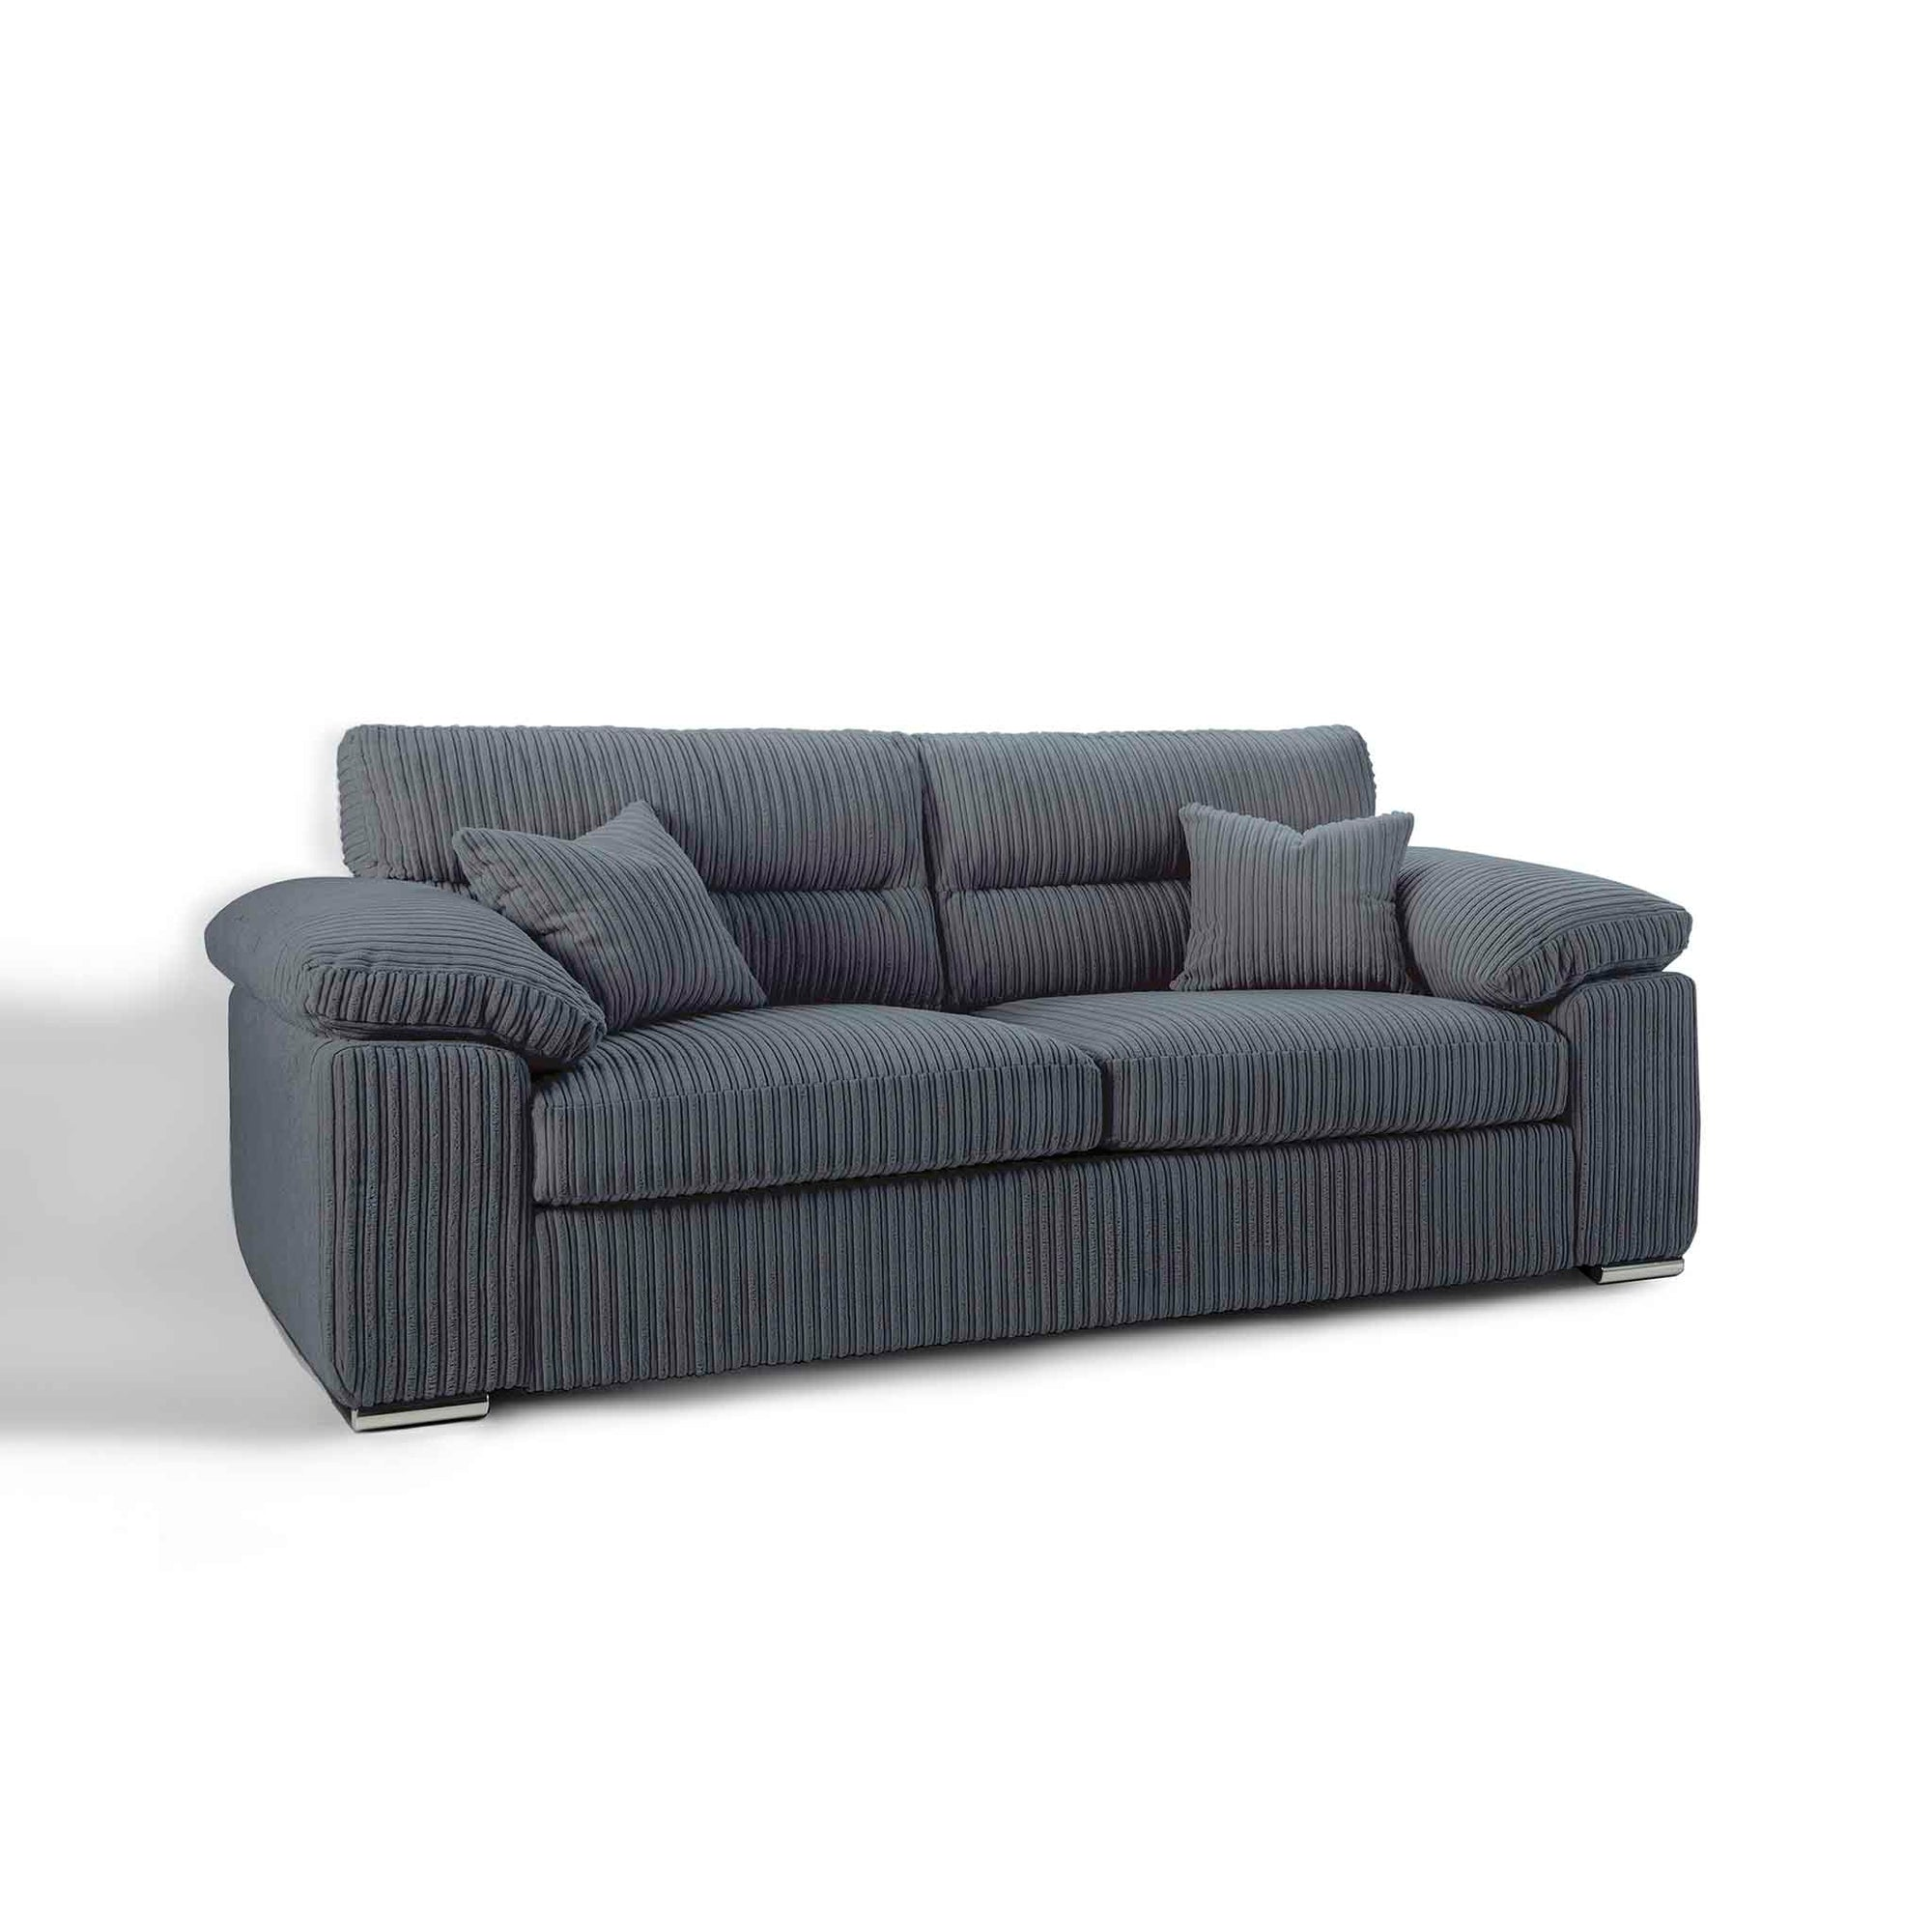 Amalfi Charcoal 3 Seater Sofa from Roseland Furniture